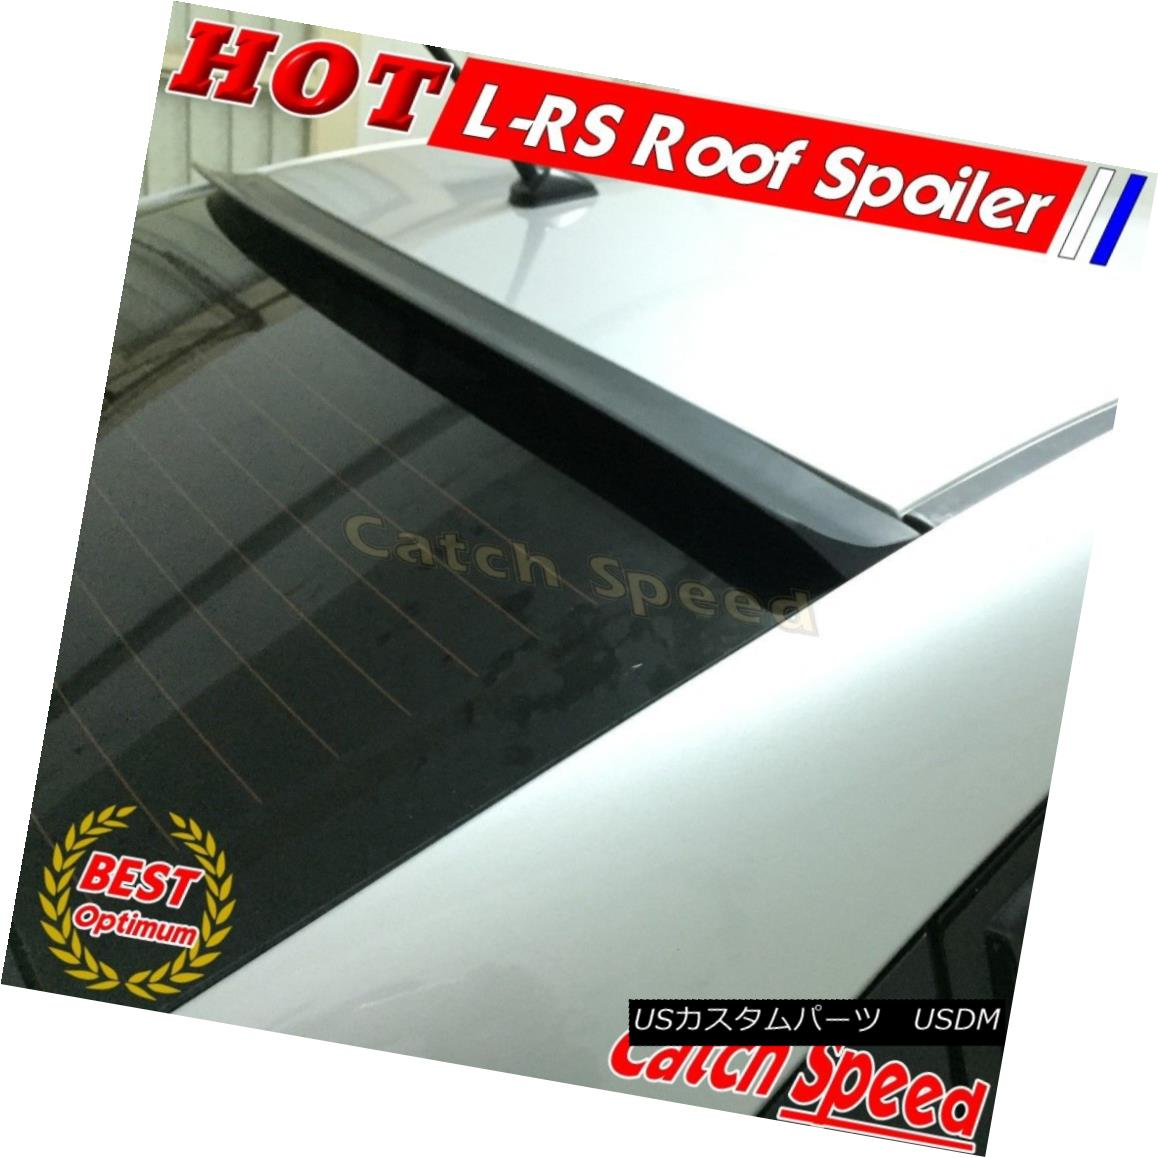 Painted Mercedes Benz CLK-class W208 Coupe K-Style Roof spoiler Rear Wing 98-02